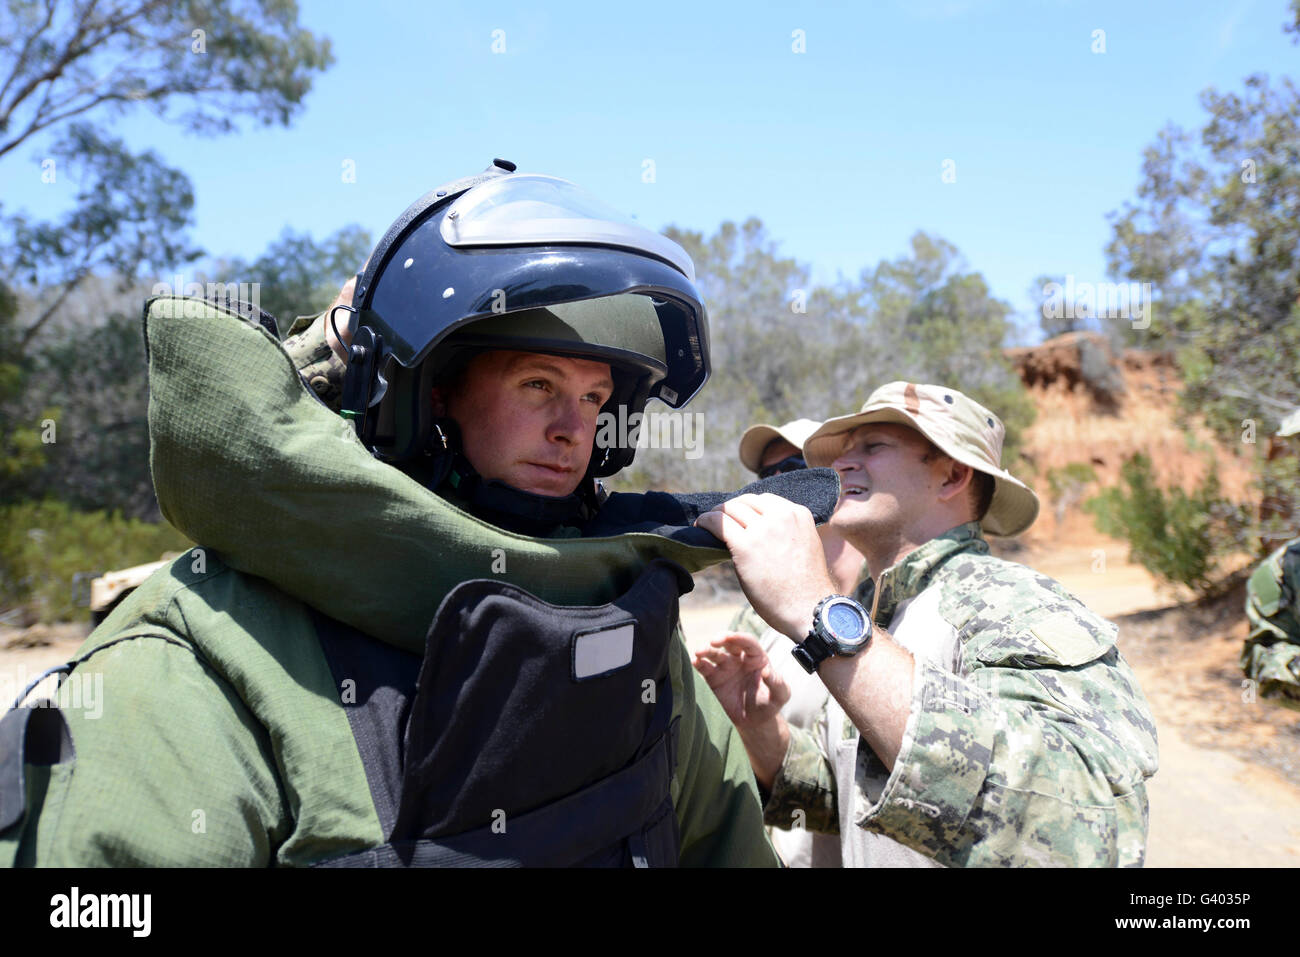 Soldier provides assistance in putting on a bomb suit. - Stock Image